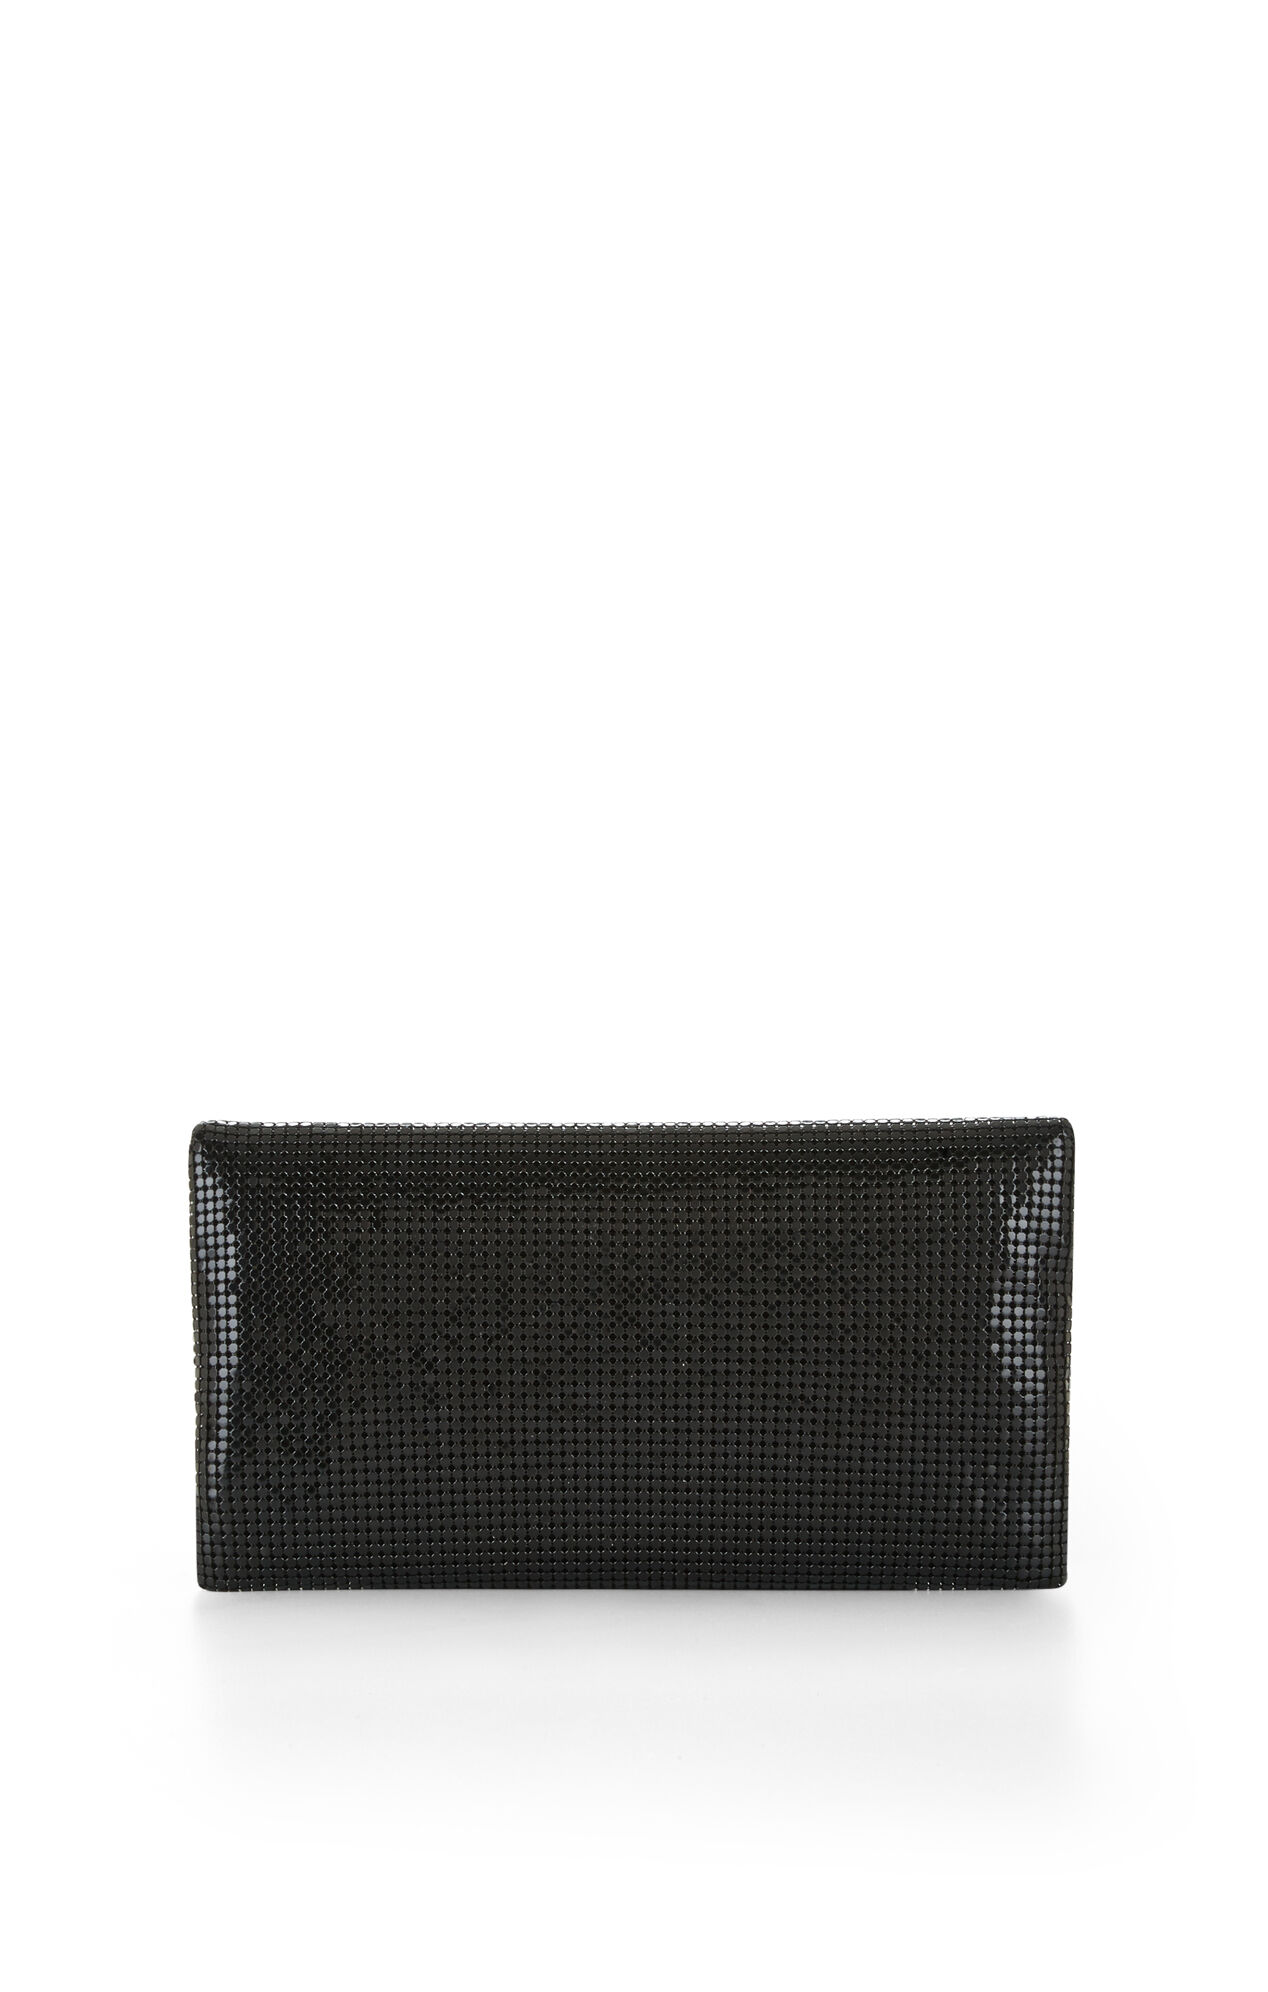 Bardot Mesh Envelope Clutch